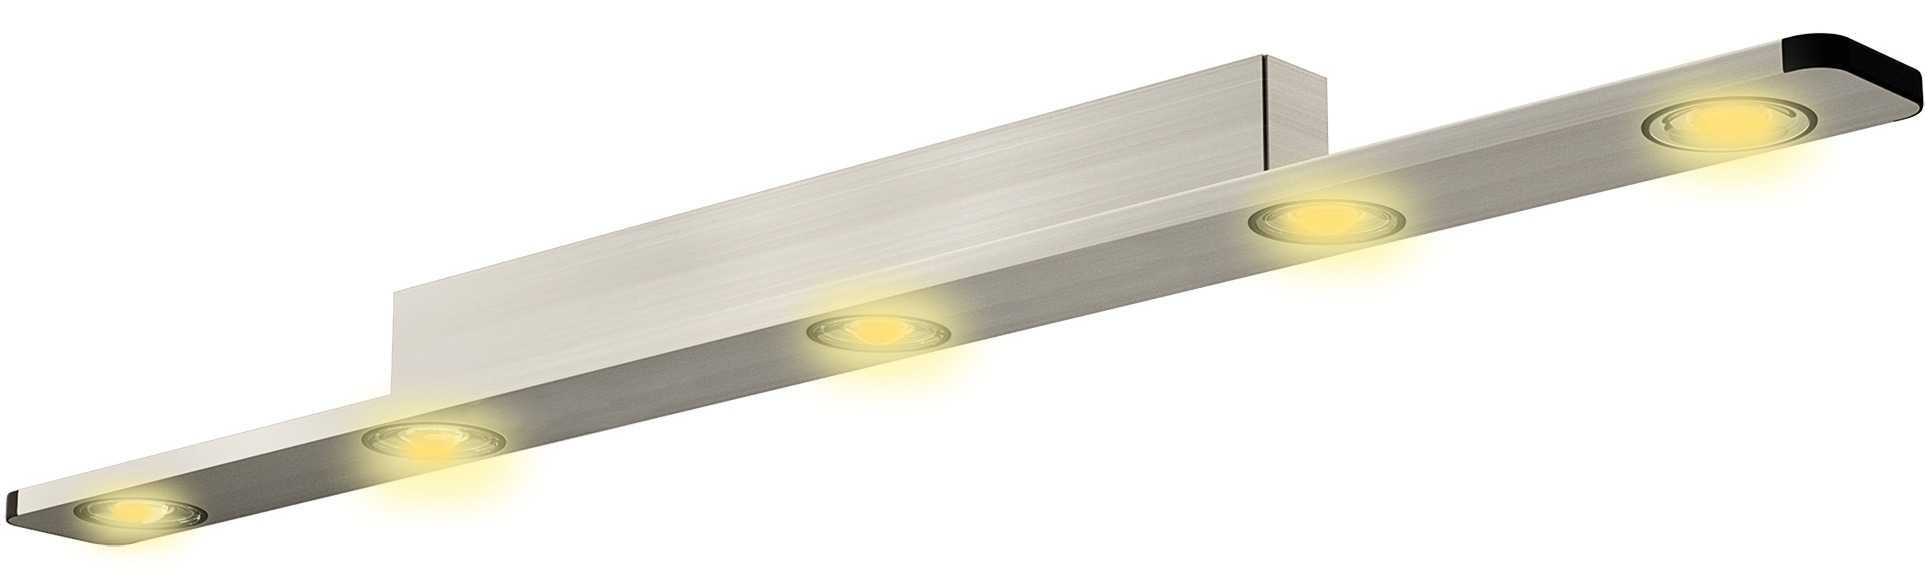 EVOTEC LED Deckenleuchte LIGHT WAVE